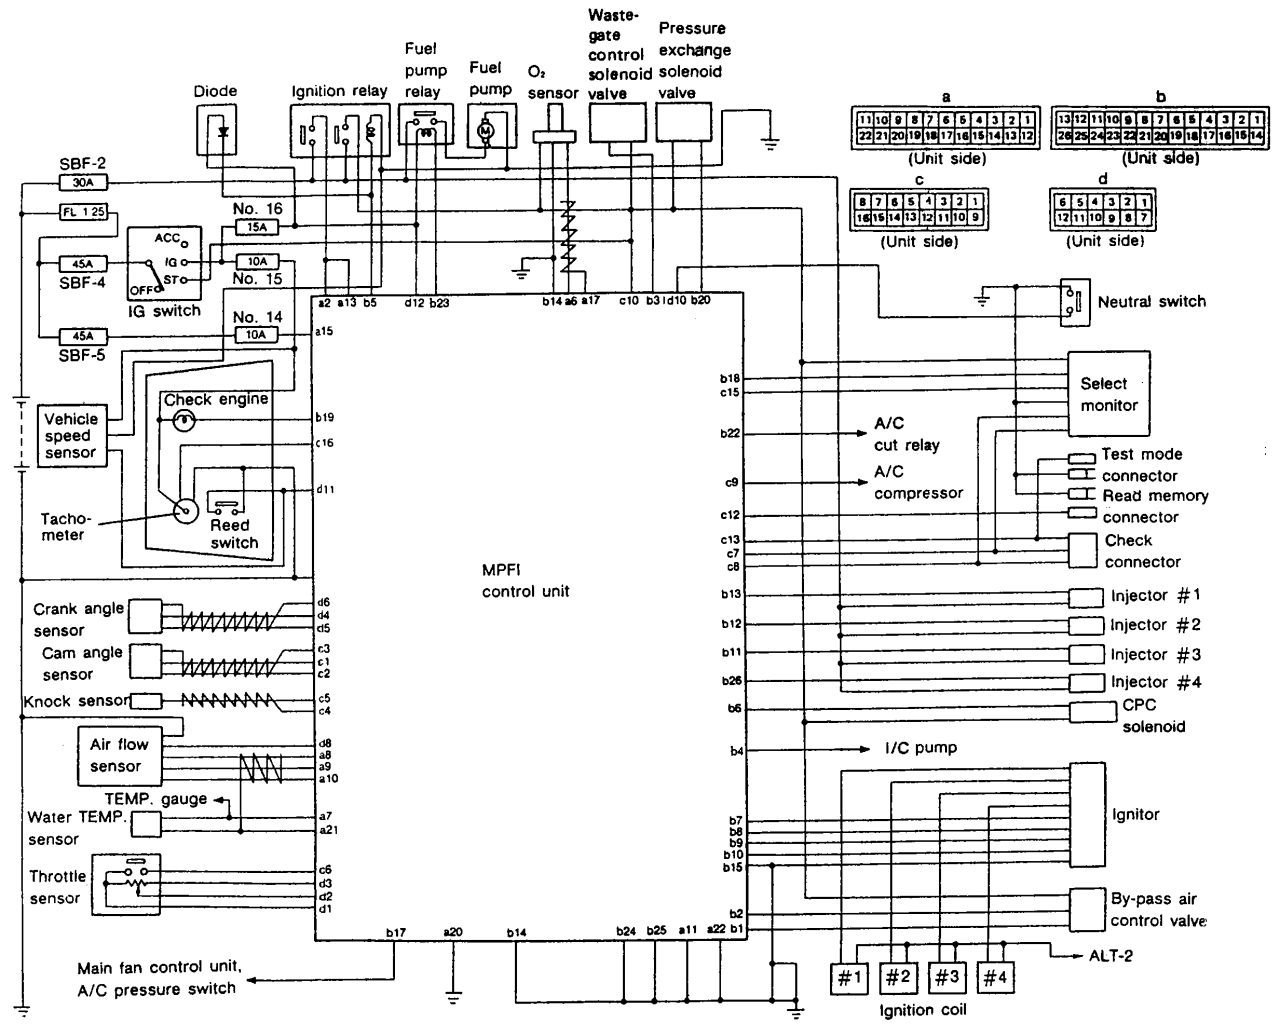 Jeep Liberty Wiring Diagram Sample